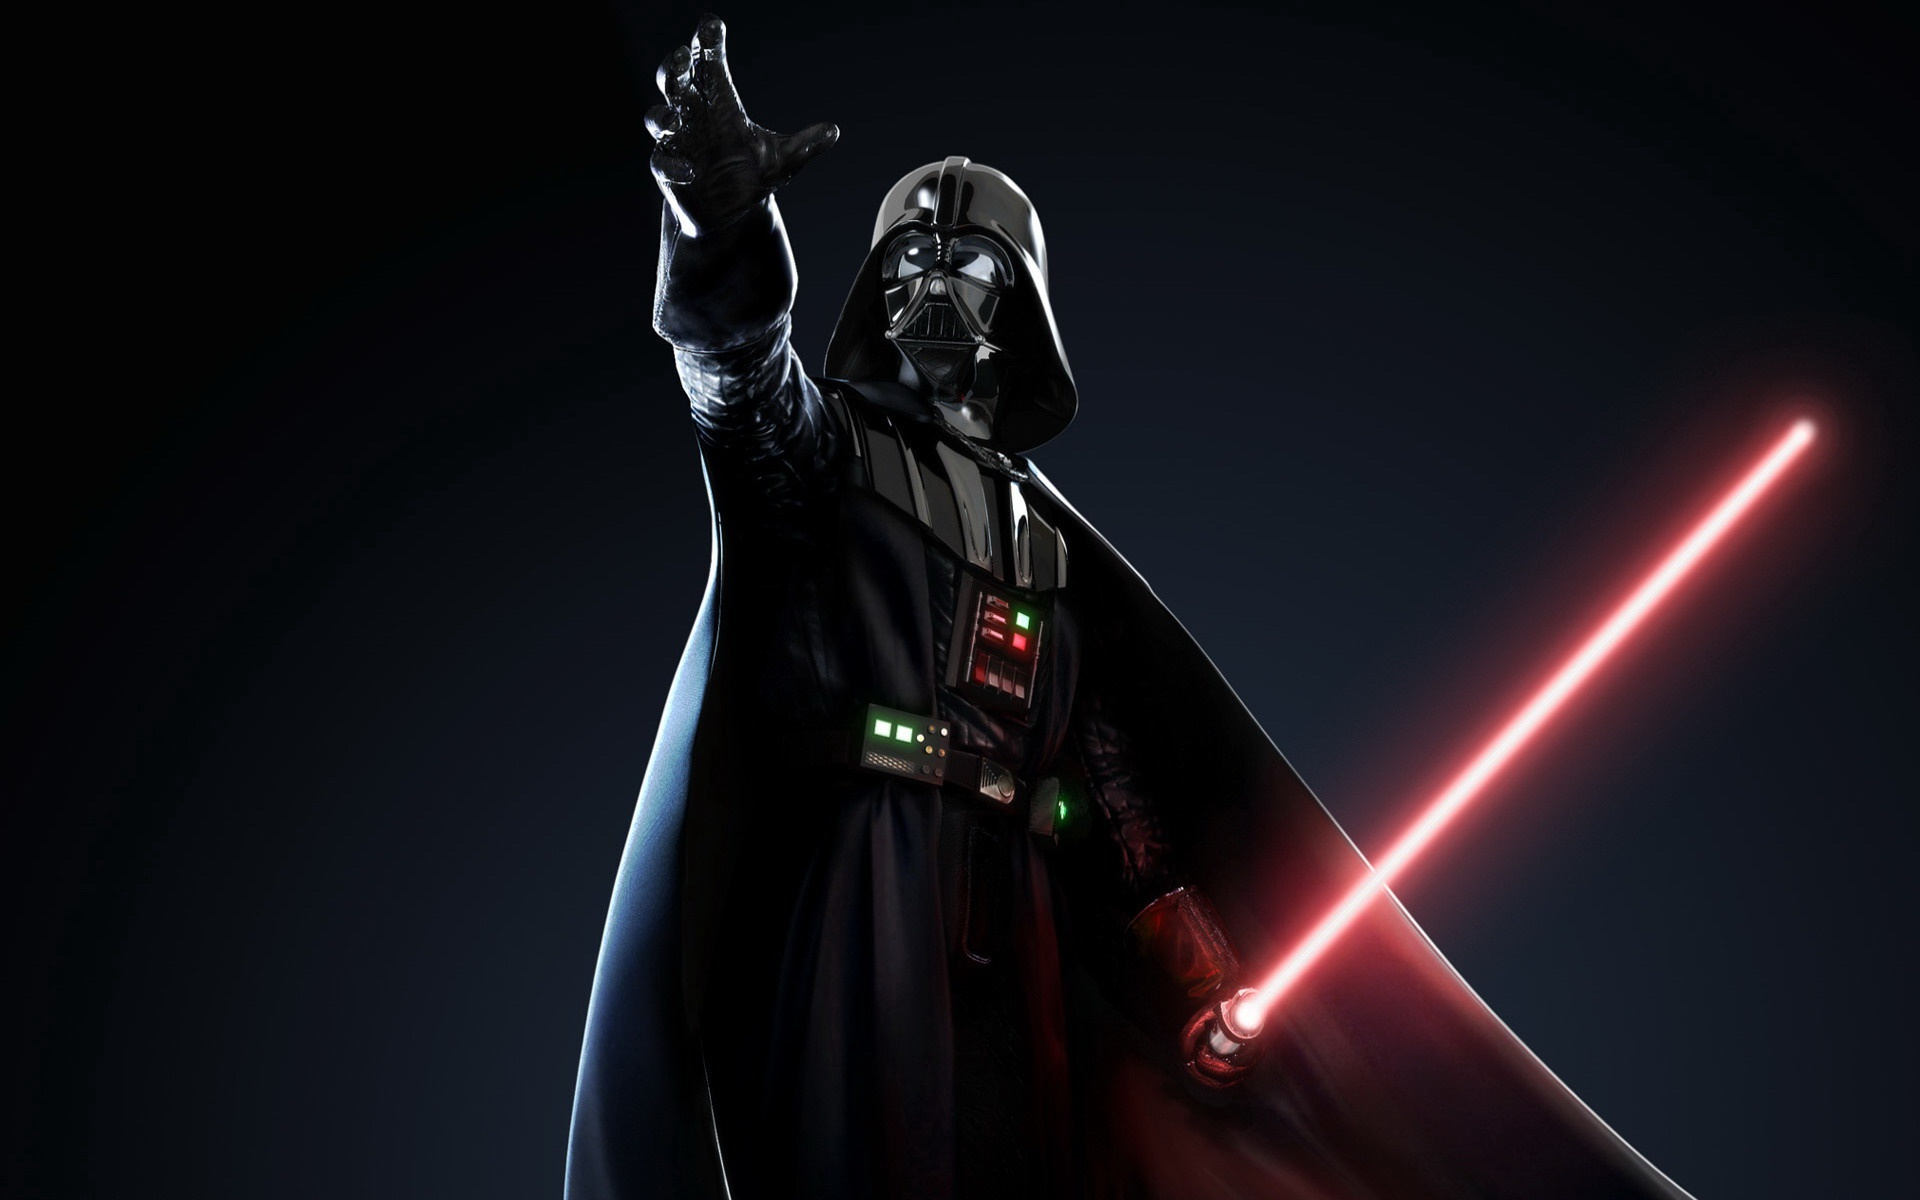 Darth vader is the primary antagonist a dark ruthless figure out to